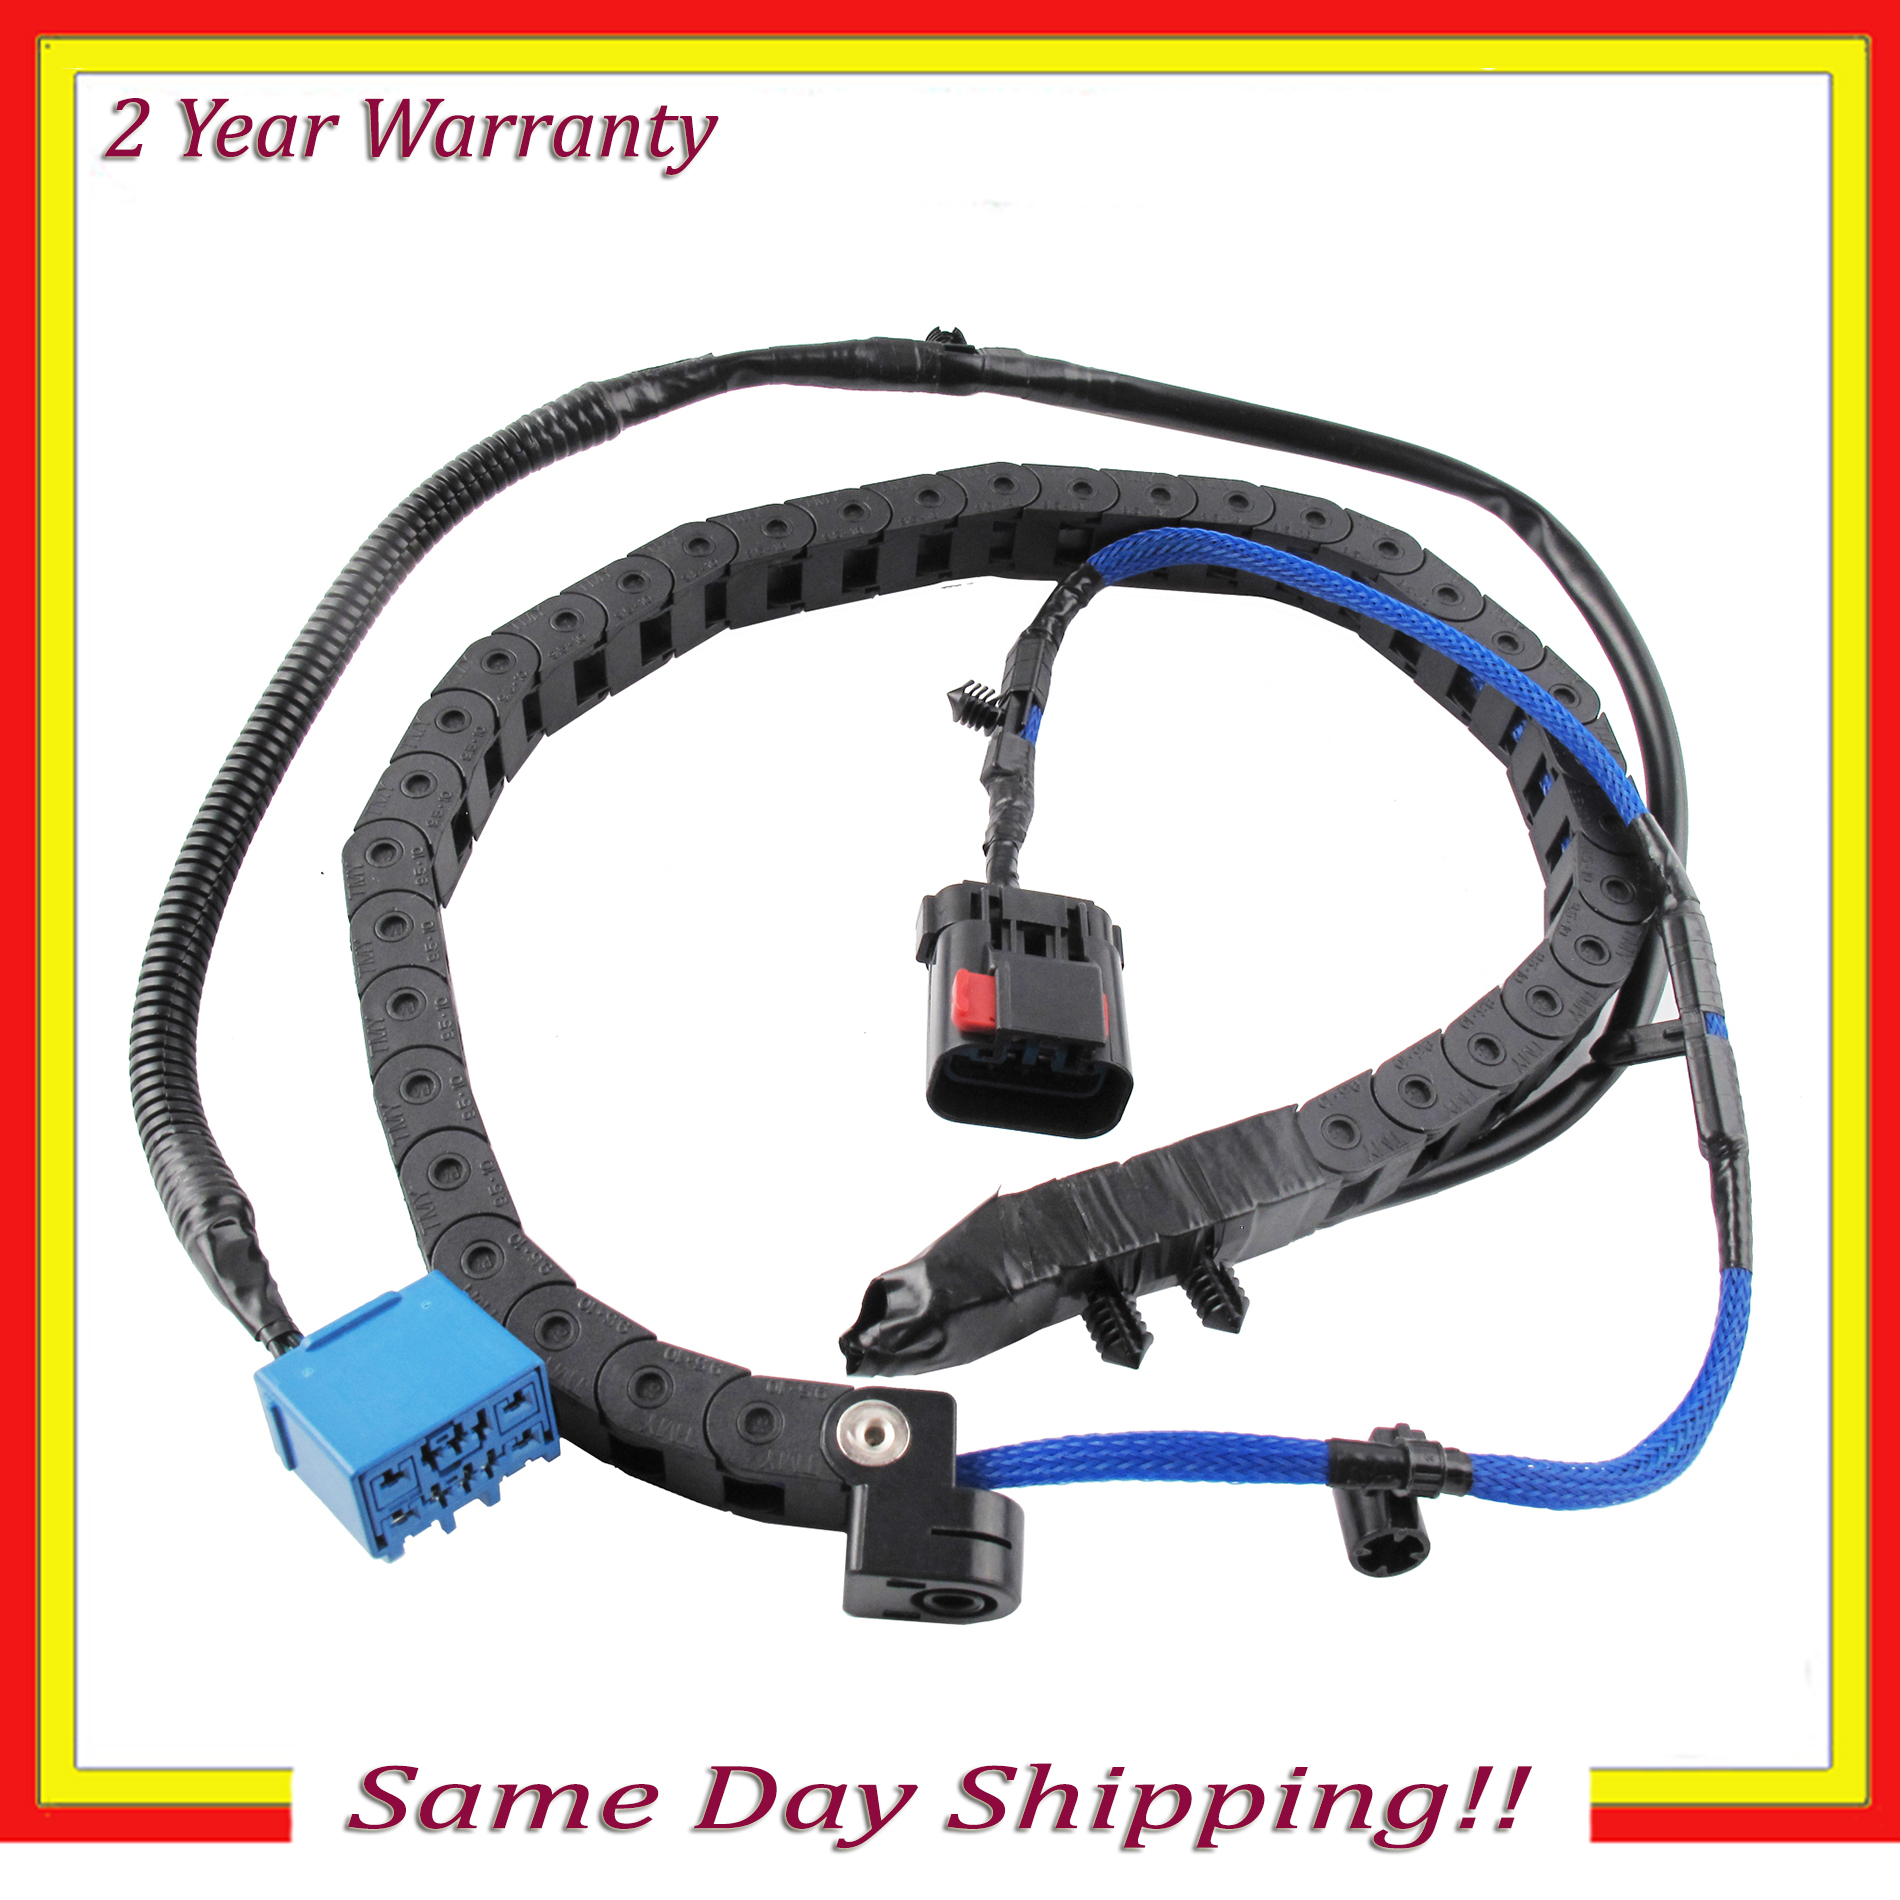 Details about Power Sliding Door Wiring Harness For New Chrysler Town on 2004 dodge ram 1500 wiring harness, 1995 dodge ram 1500 wiring harness, 2005 ford f250 wiring harness, 2004 dodge durango wiring harness, 2007 dodge caliber wiring harness, 2002 dodge ram 1500 wiring harness, 1996 dodge ram 1500 wiring harness, 2009 dodge ram 1500 wiring harness, 2005 jeep laredo wiring harness, 2000 dodge ram 1500 wiring harness, 2003 dodge caravan wiring harness, 2007 dodge ram 2500 wiring harness, 2001 dodge ram 1500 wiring harness, 2005 dodge ram 1500 wiring harness, 1996 dodge caravan wiring harness, 2003 dodge neon wiring harness,